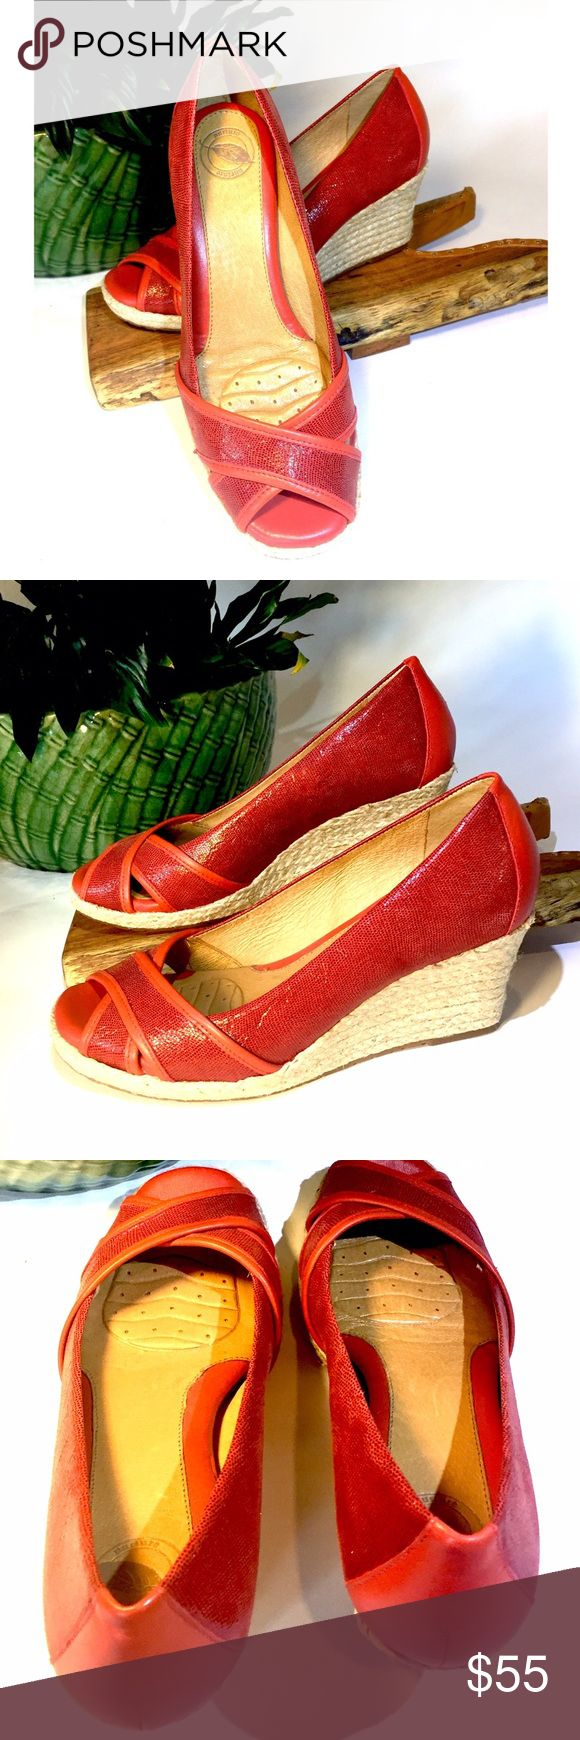 Nature red wedge shoe Never worn, Nature red foot formed wedge.  Nature is a Danish brand committed to making foot formed shoes with style.  The quality of Denmark craftsmanship is highly evident in these comfy/cute wedges.  Size 8 Nature Shoes Wedges